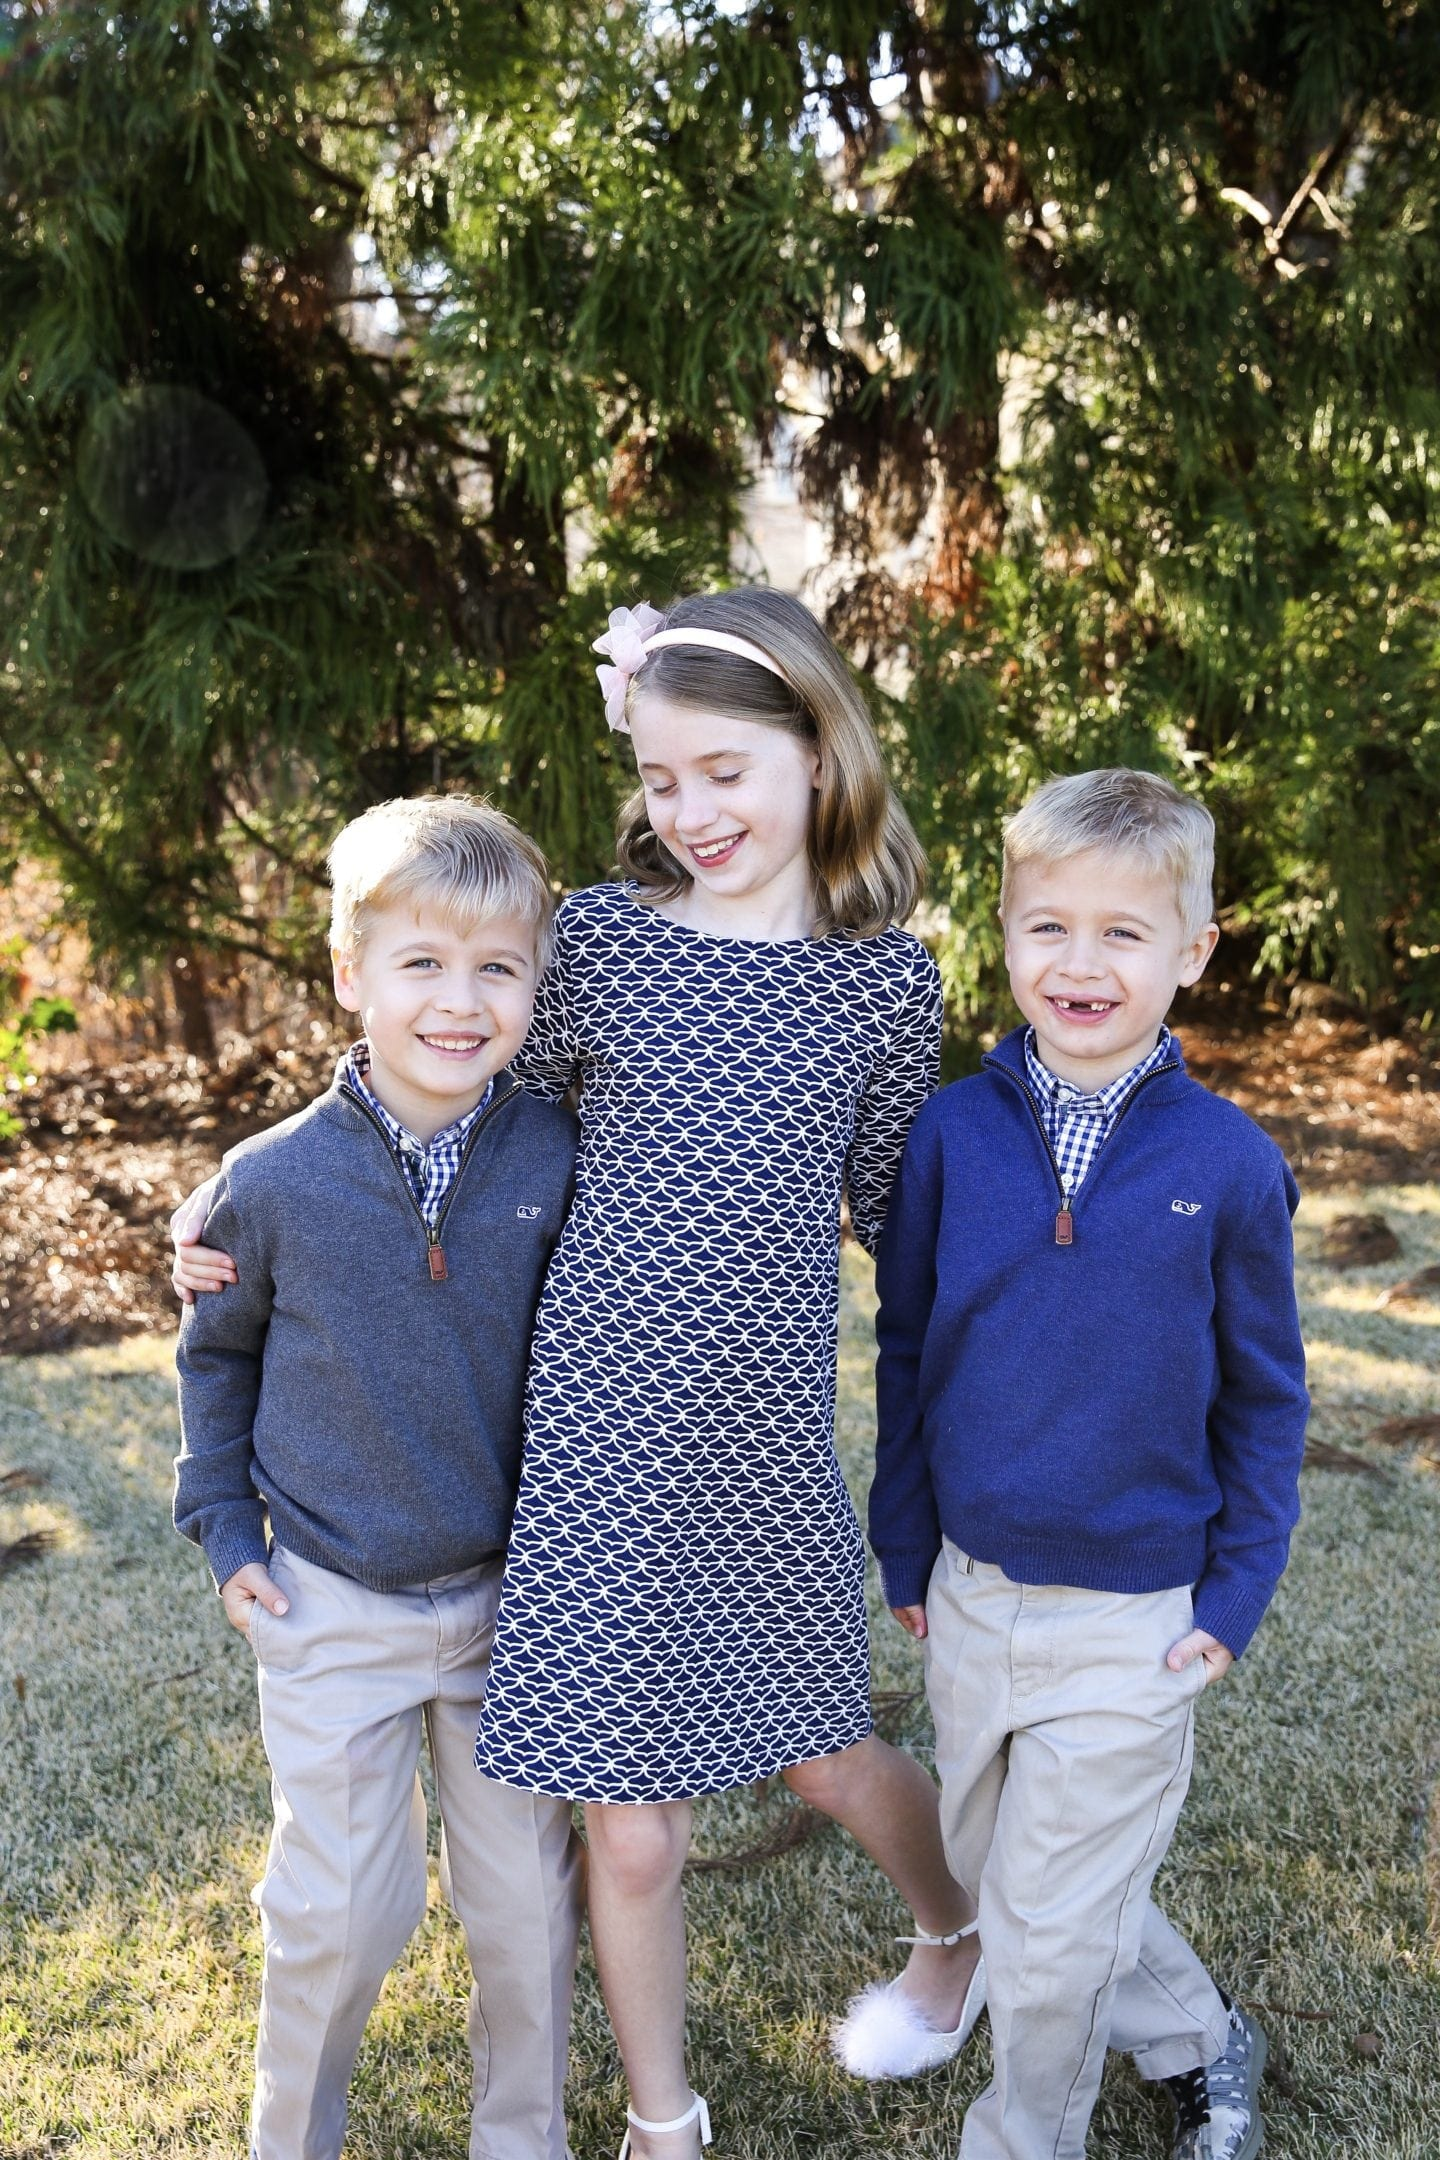 Vineyard Vines Clothes For Kids My Sweet Three And Their